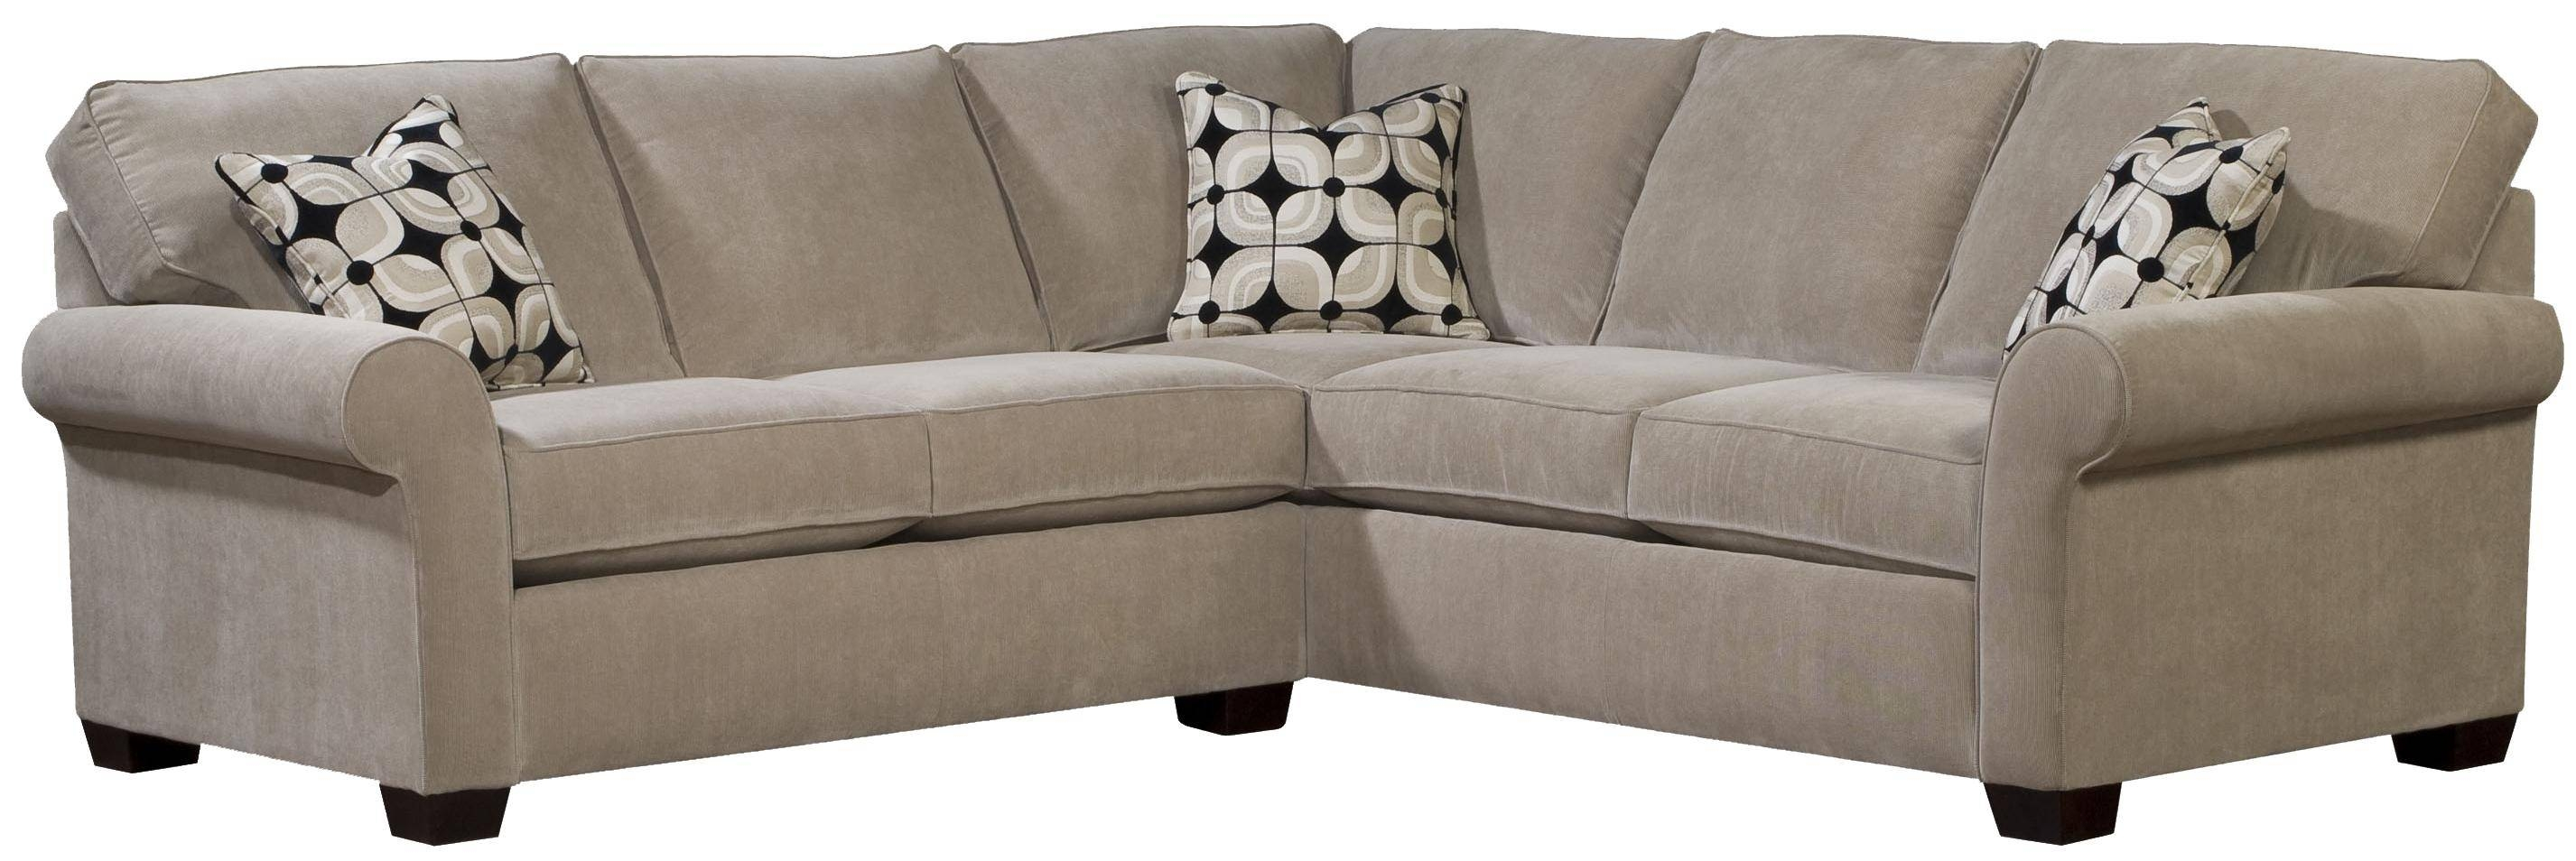 Broyhill Furniture Ethan Two Piece Sectional With Laf Full Sleeper in Broyhill Sectional Sofas (Image 4 of 30)